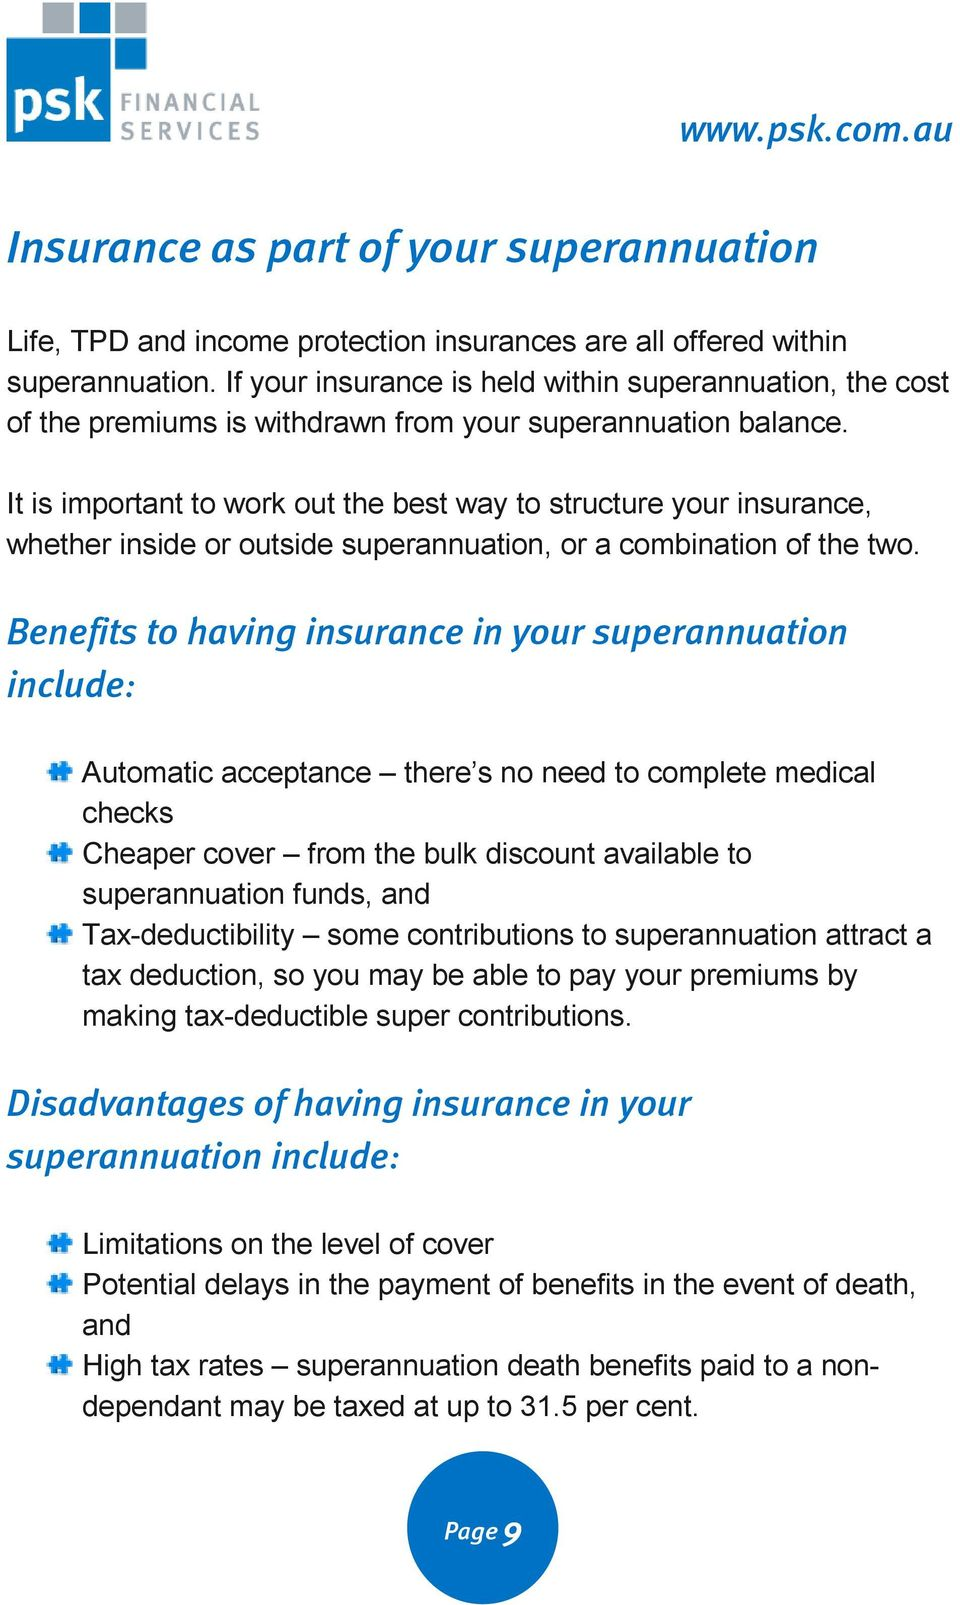 It is important to work out the best way to structure your insurance, whether inside or outside superannuation, or a combination of the two.